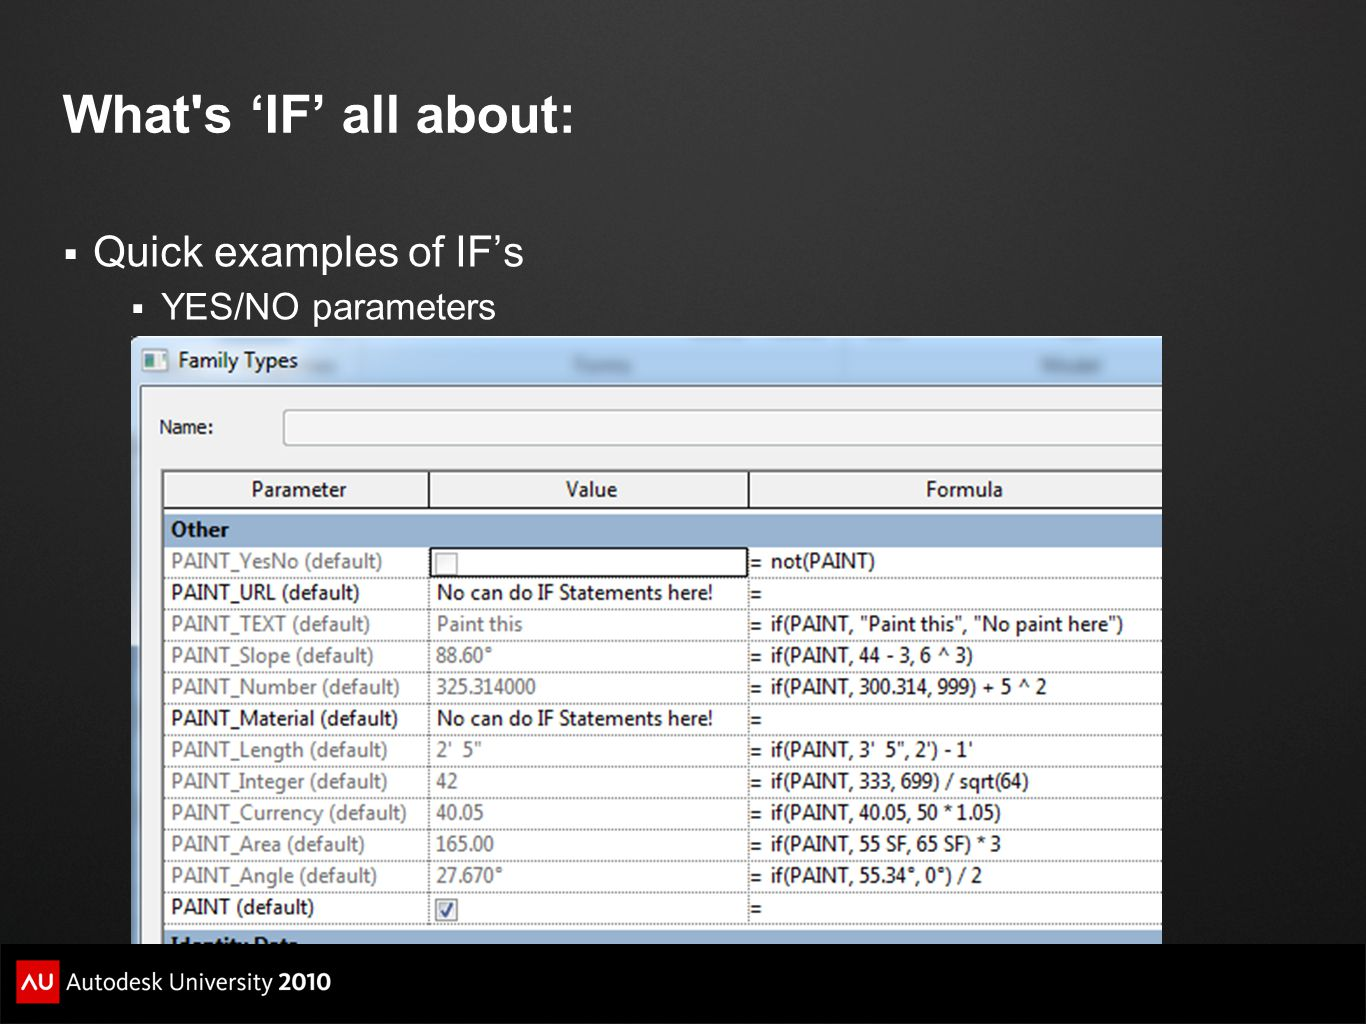 What s 'IF' all about: Quick examples of IF's YES/NO parameters